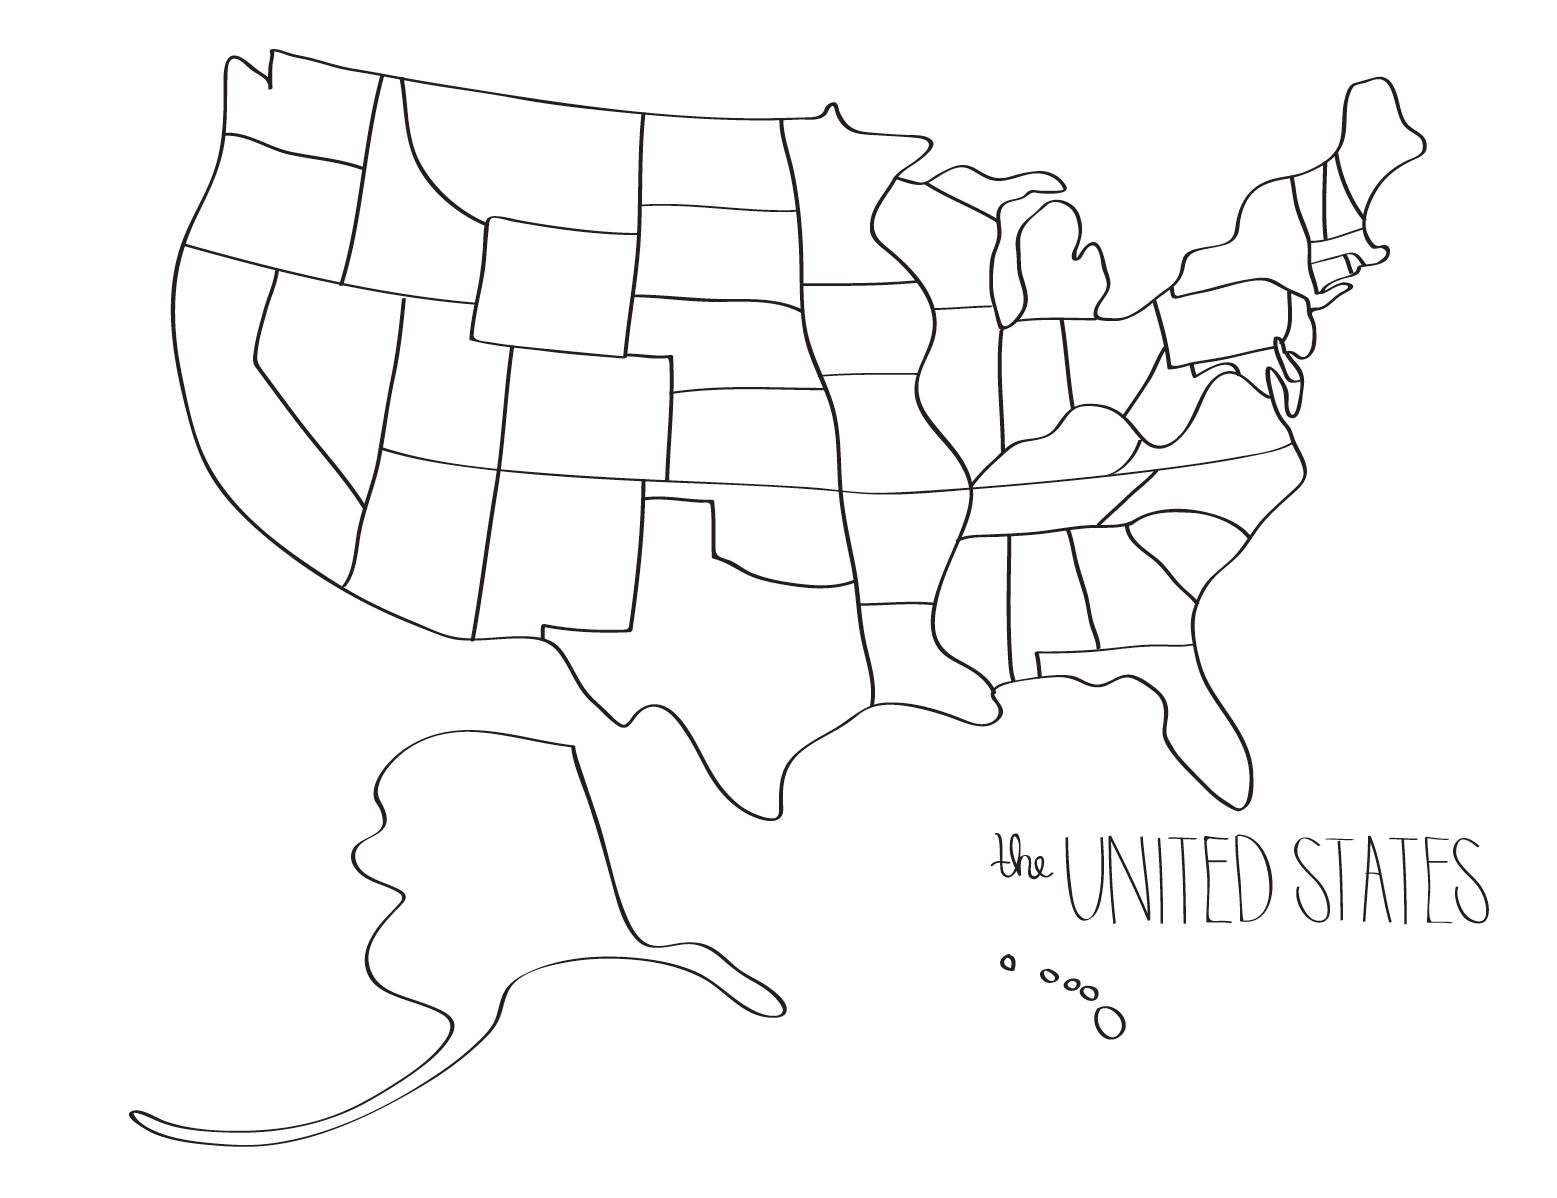 drawings of the united states map Learn to draw the UNITED STATES blob map style | Etsy | Learn to